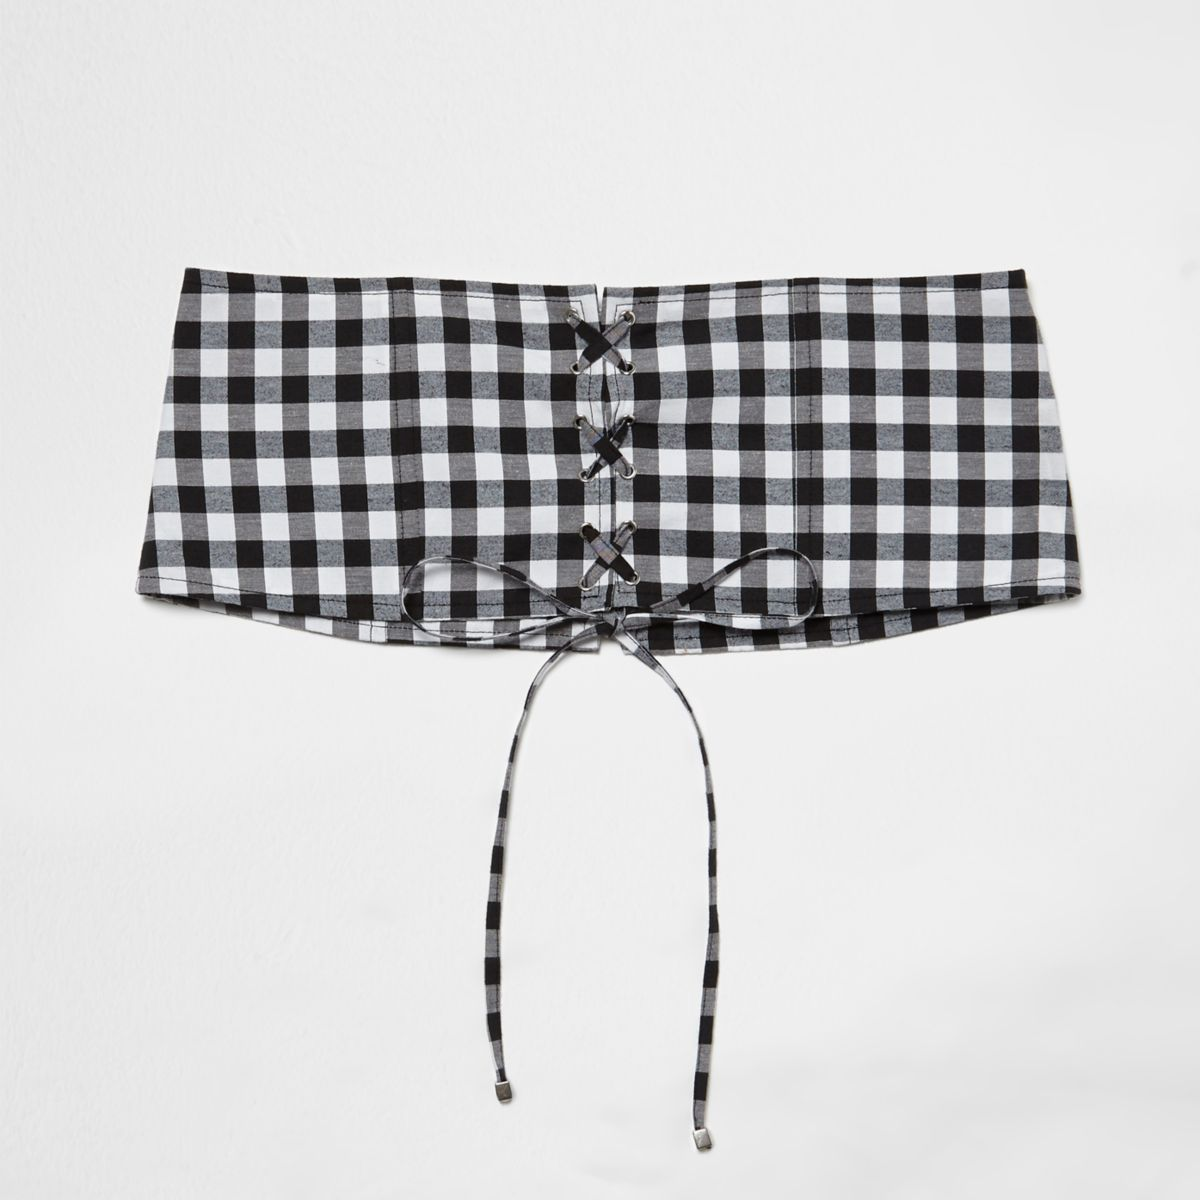 Black gingham print lace-up corset waist belt